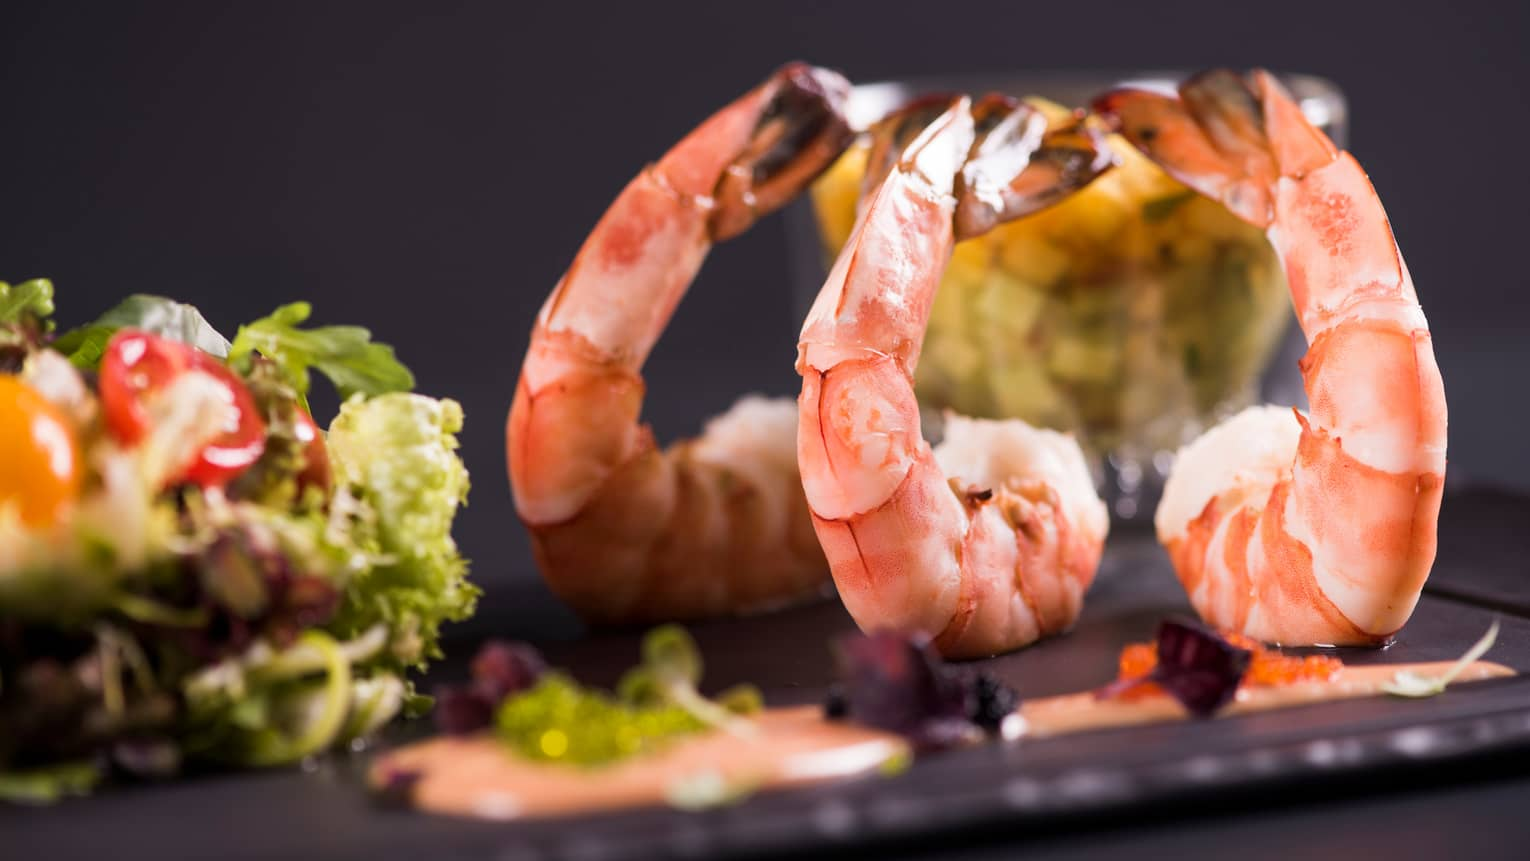 Three large cooked shrimps on black platter in front of salad